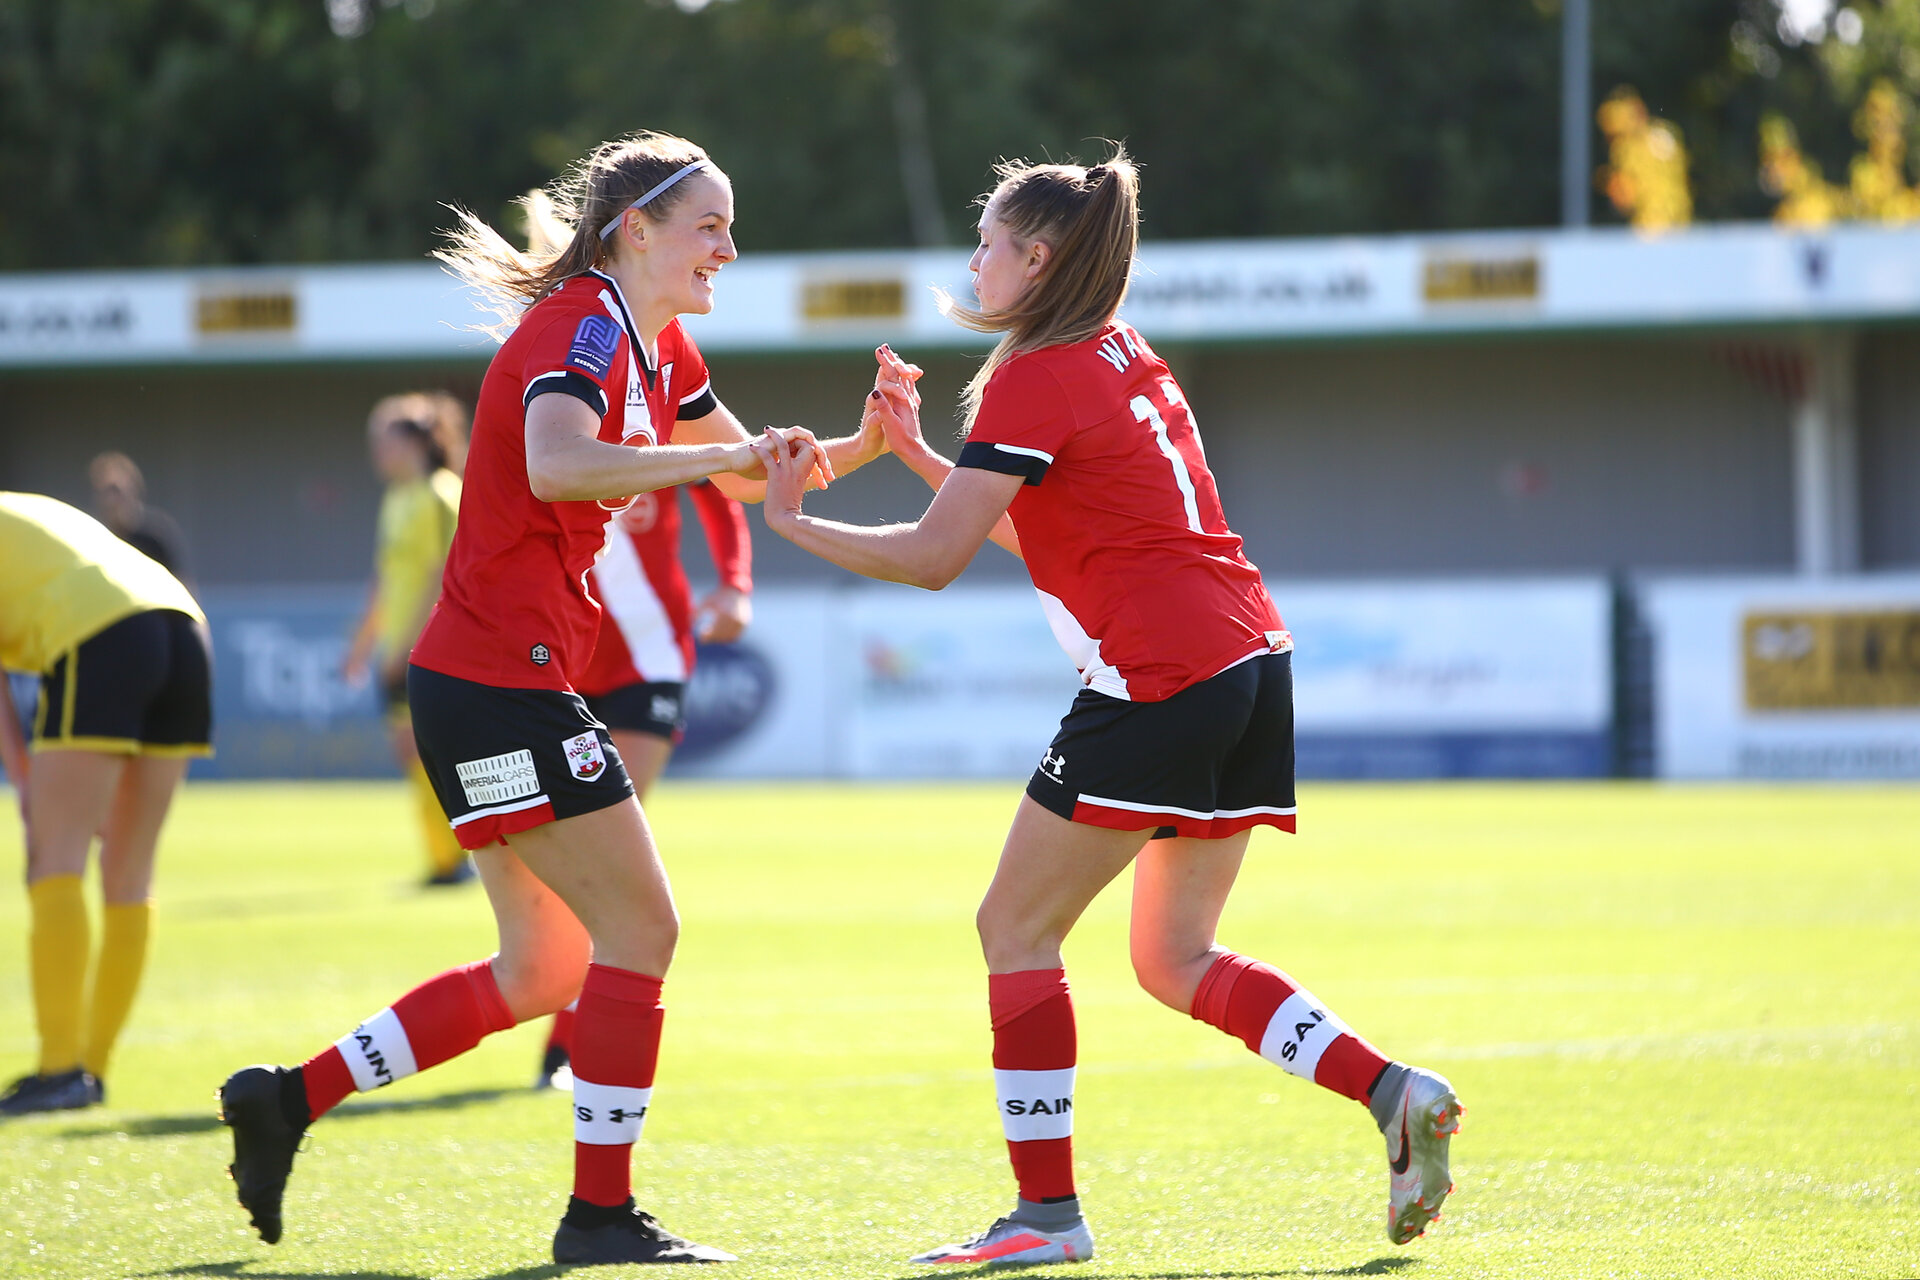 Southampton, ENGLAND - SEPTEMBER 27: during the FAWNL match between Southampton Women and Buckland Athletic at Snows Stadium on September 27, 2020 in Southampton, United Kingdom (Photo by Isabelle Field/Southampton FC via Getty Images)